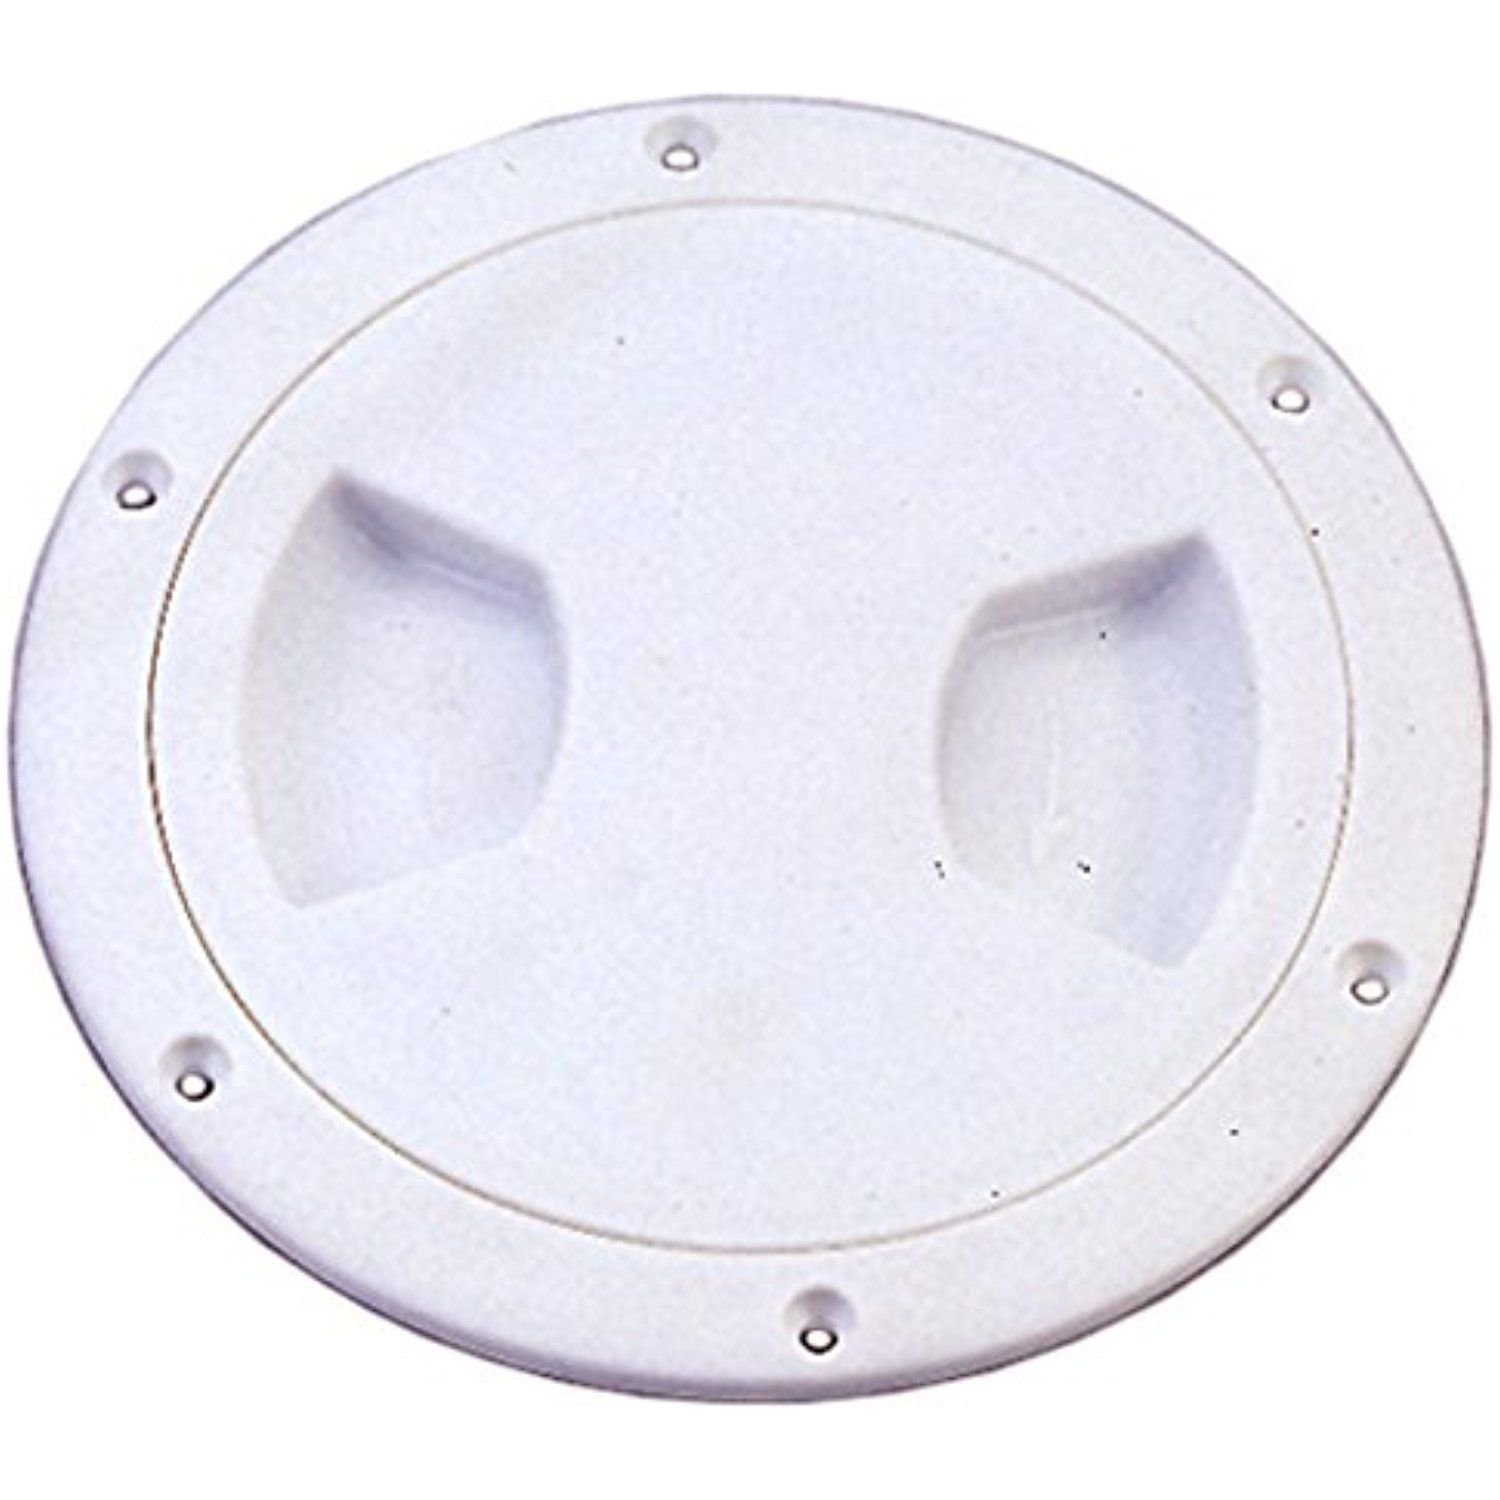 Seasense Waterproof Deck Plate 4 Inch Find Out More About The Great Product At The Image Link This Is An Affiliate Link Plates Waterproof Deck